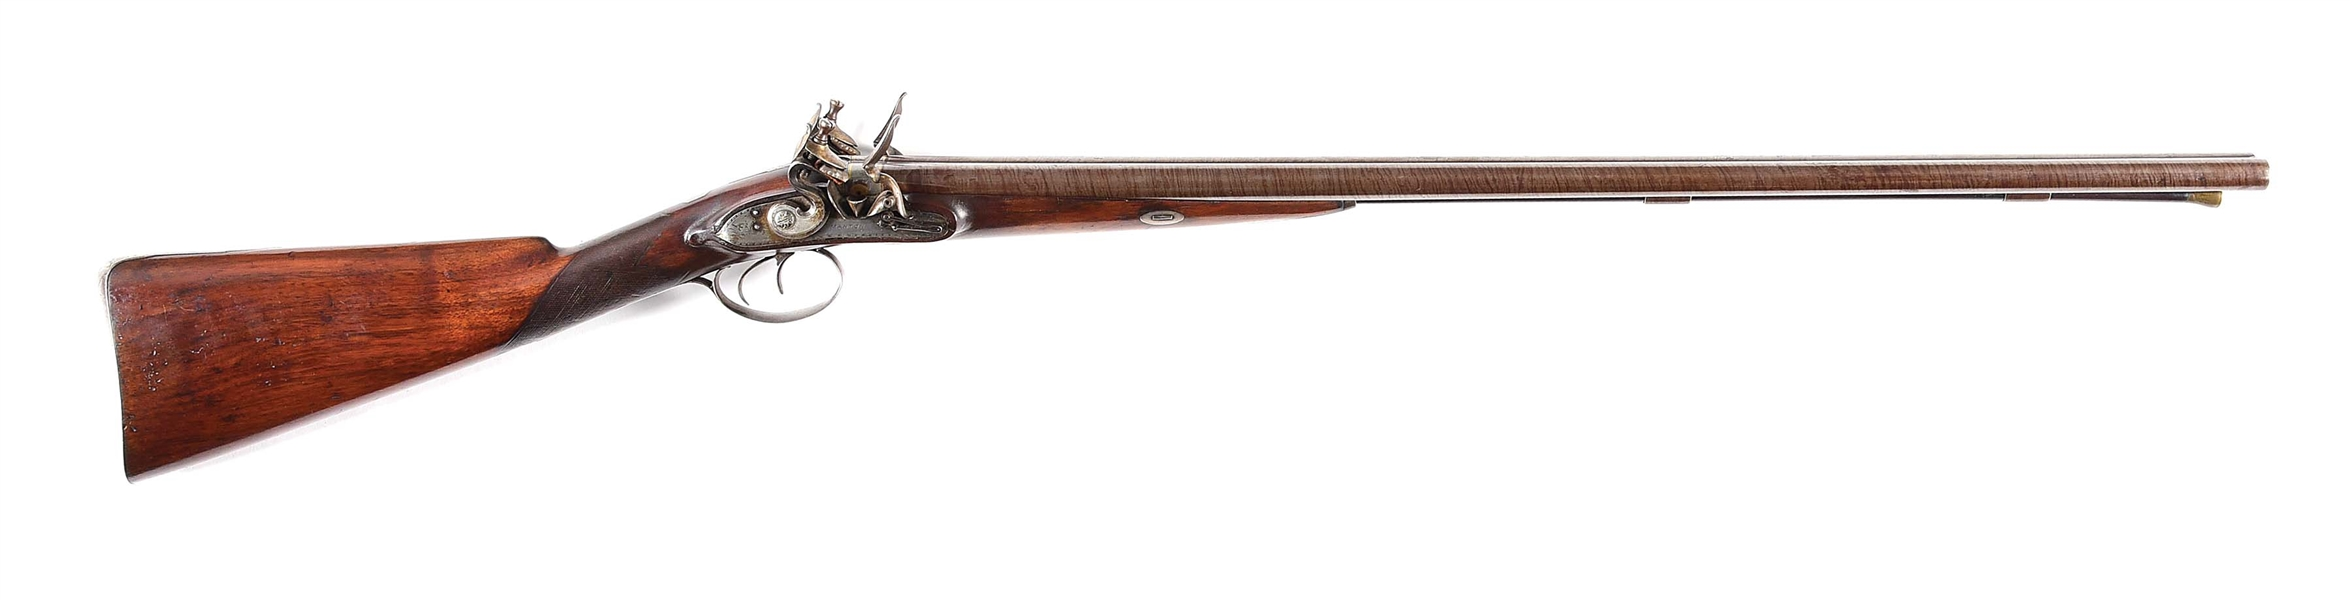 (A) A CONTEMPORARY COPY OF MANTON SIDE BY SIDE FLINTLOCK SHOTGUN.